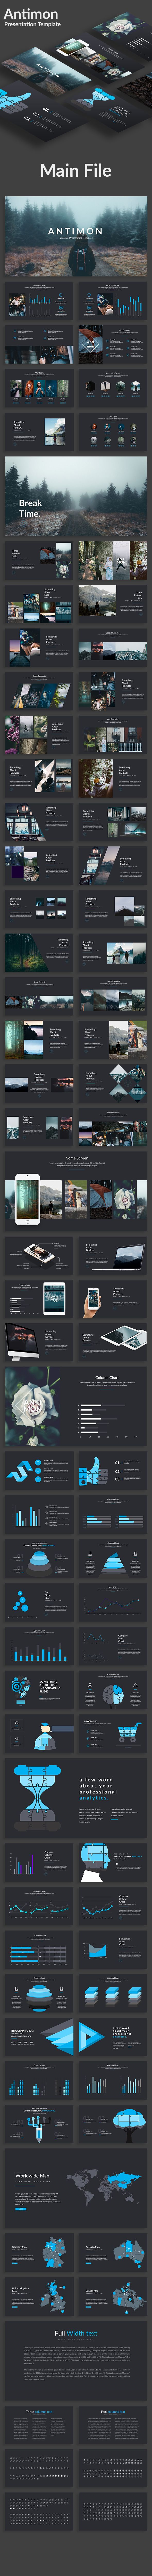 Antimon Creative Powerpoint Template - Creative PowerPoint Templates